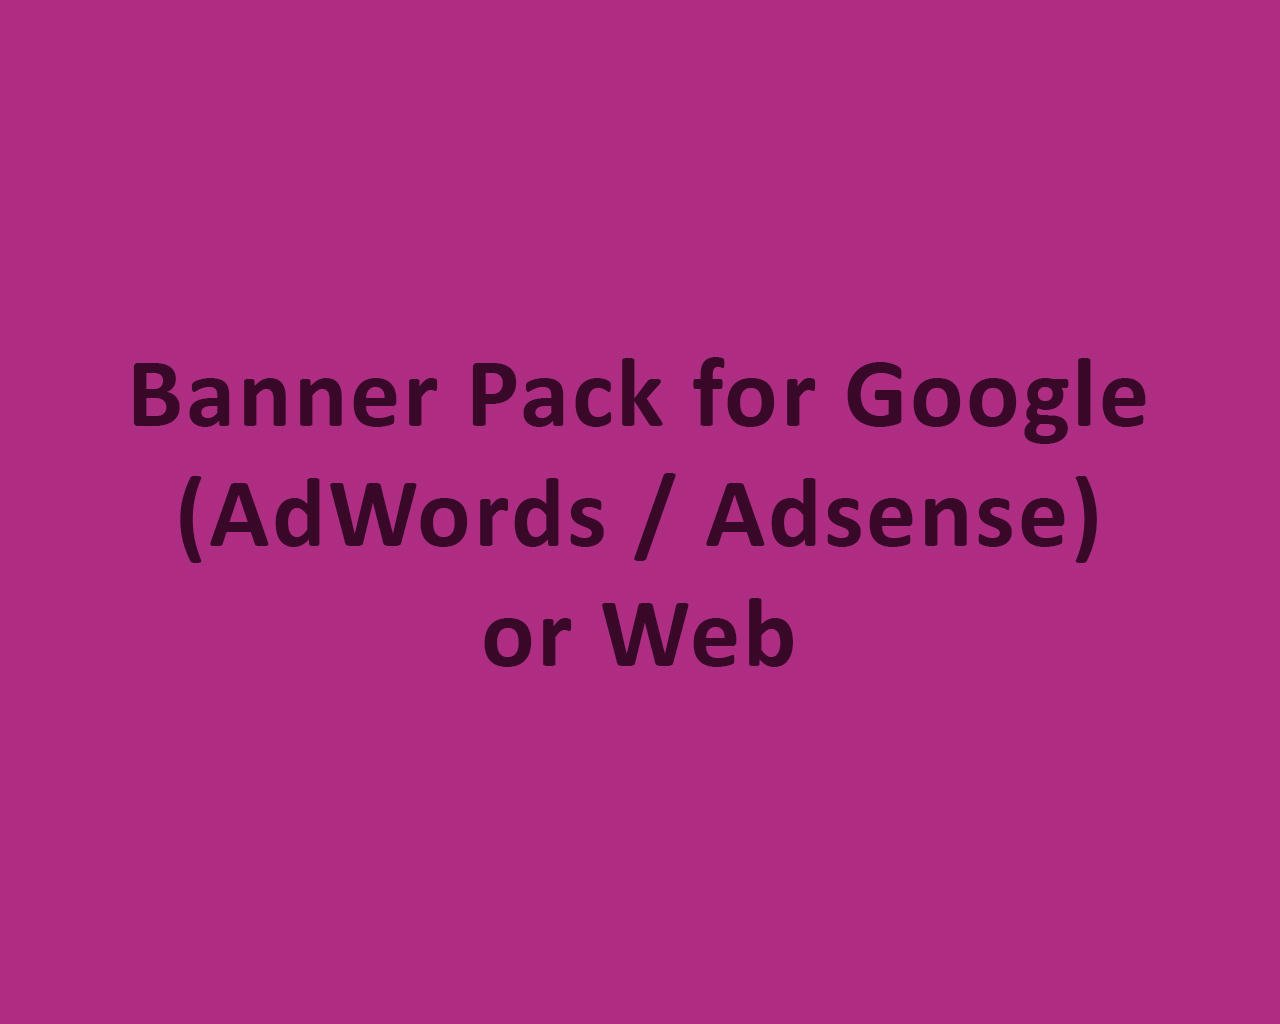 Banner Pack for Google (AdWords / Adsense) or Web by odiusfly - 105962